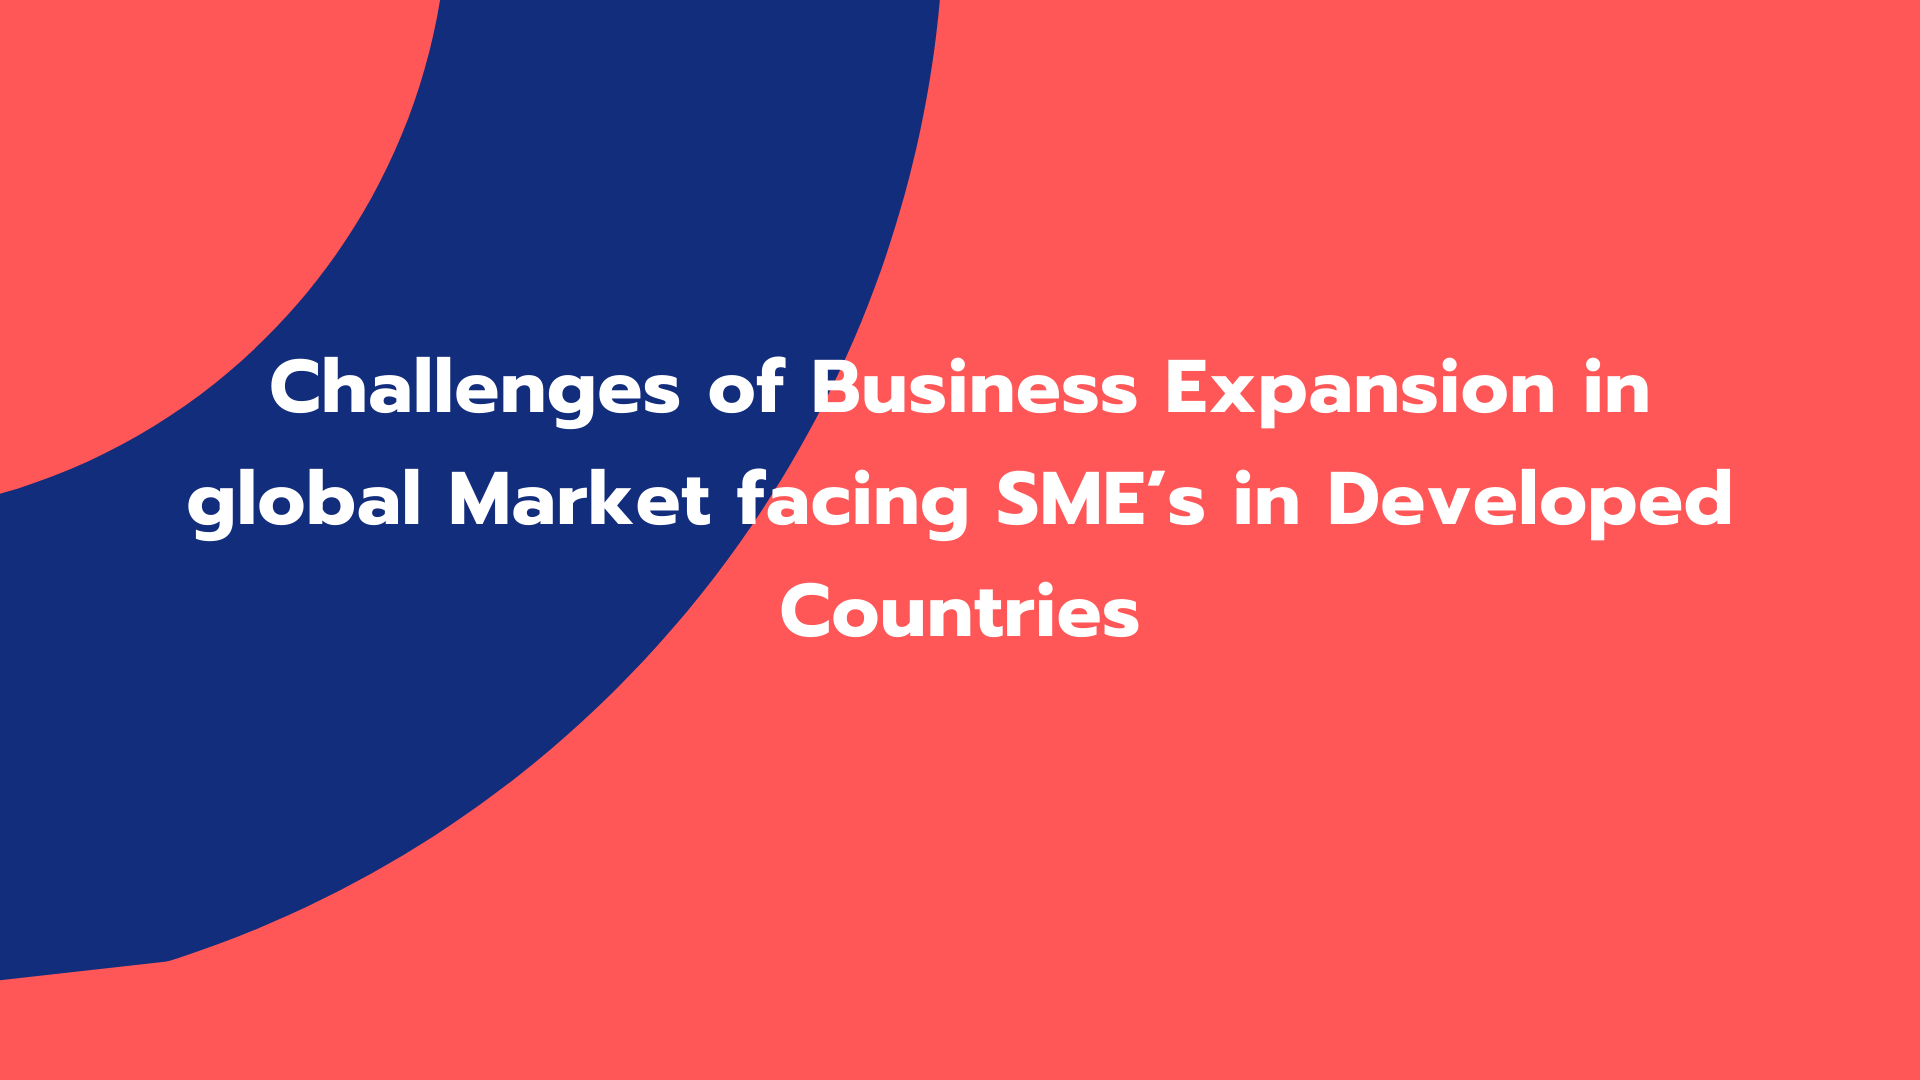 Challenges of Business Expansion in global Market facing SME's in Developed Countries